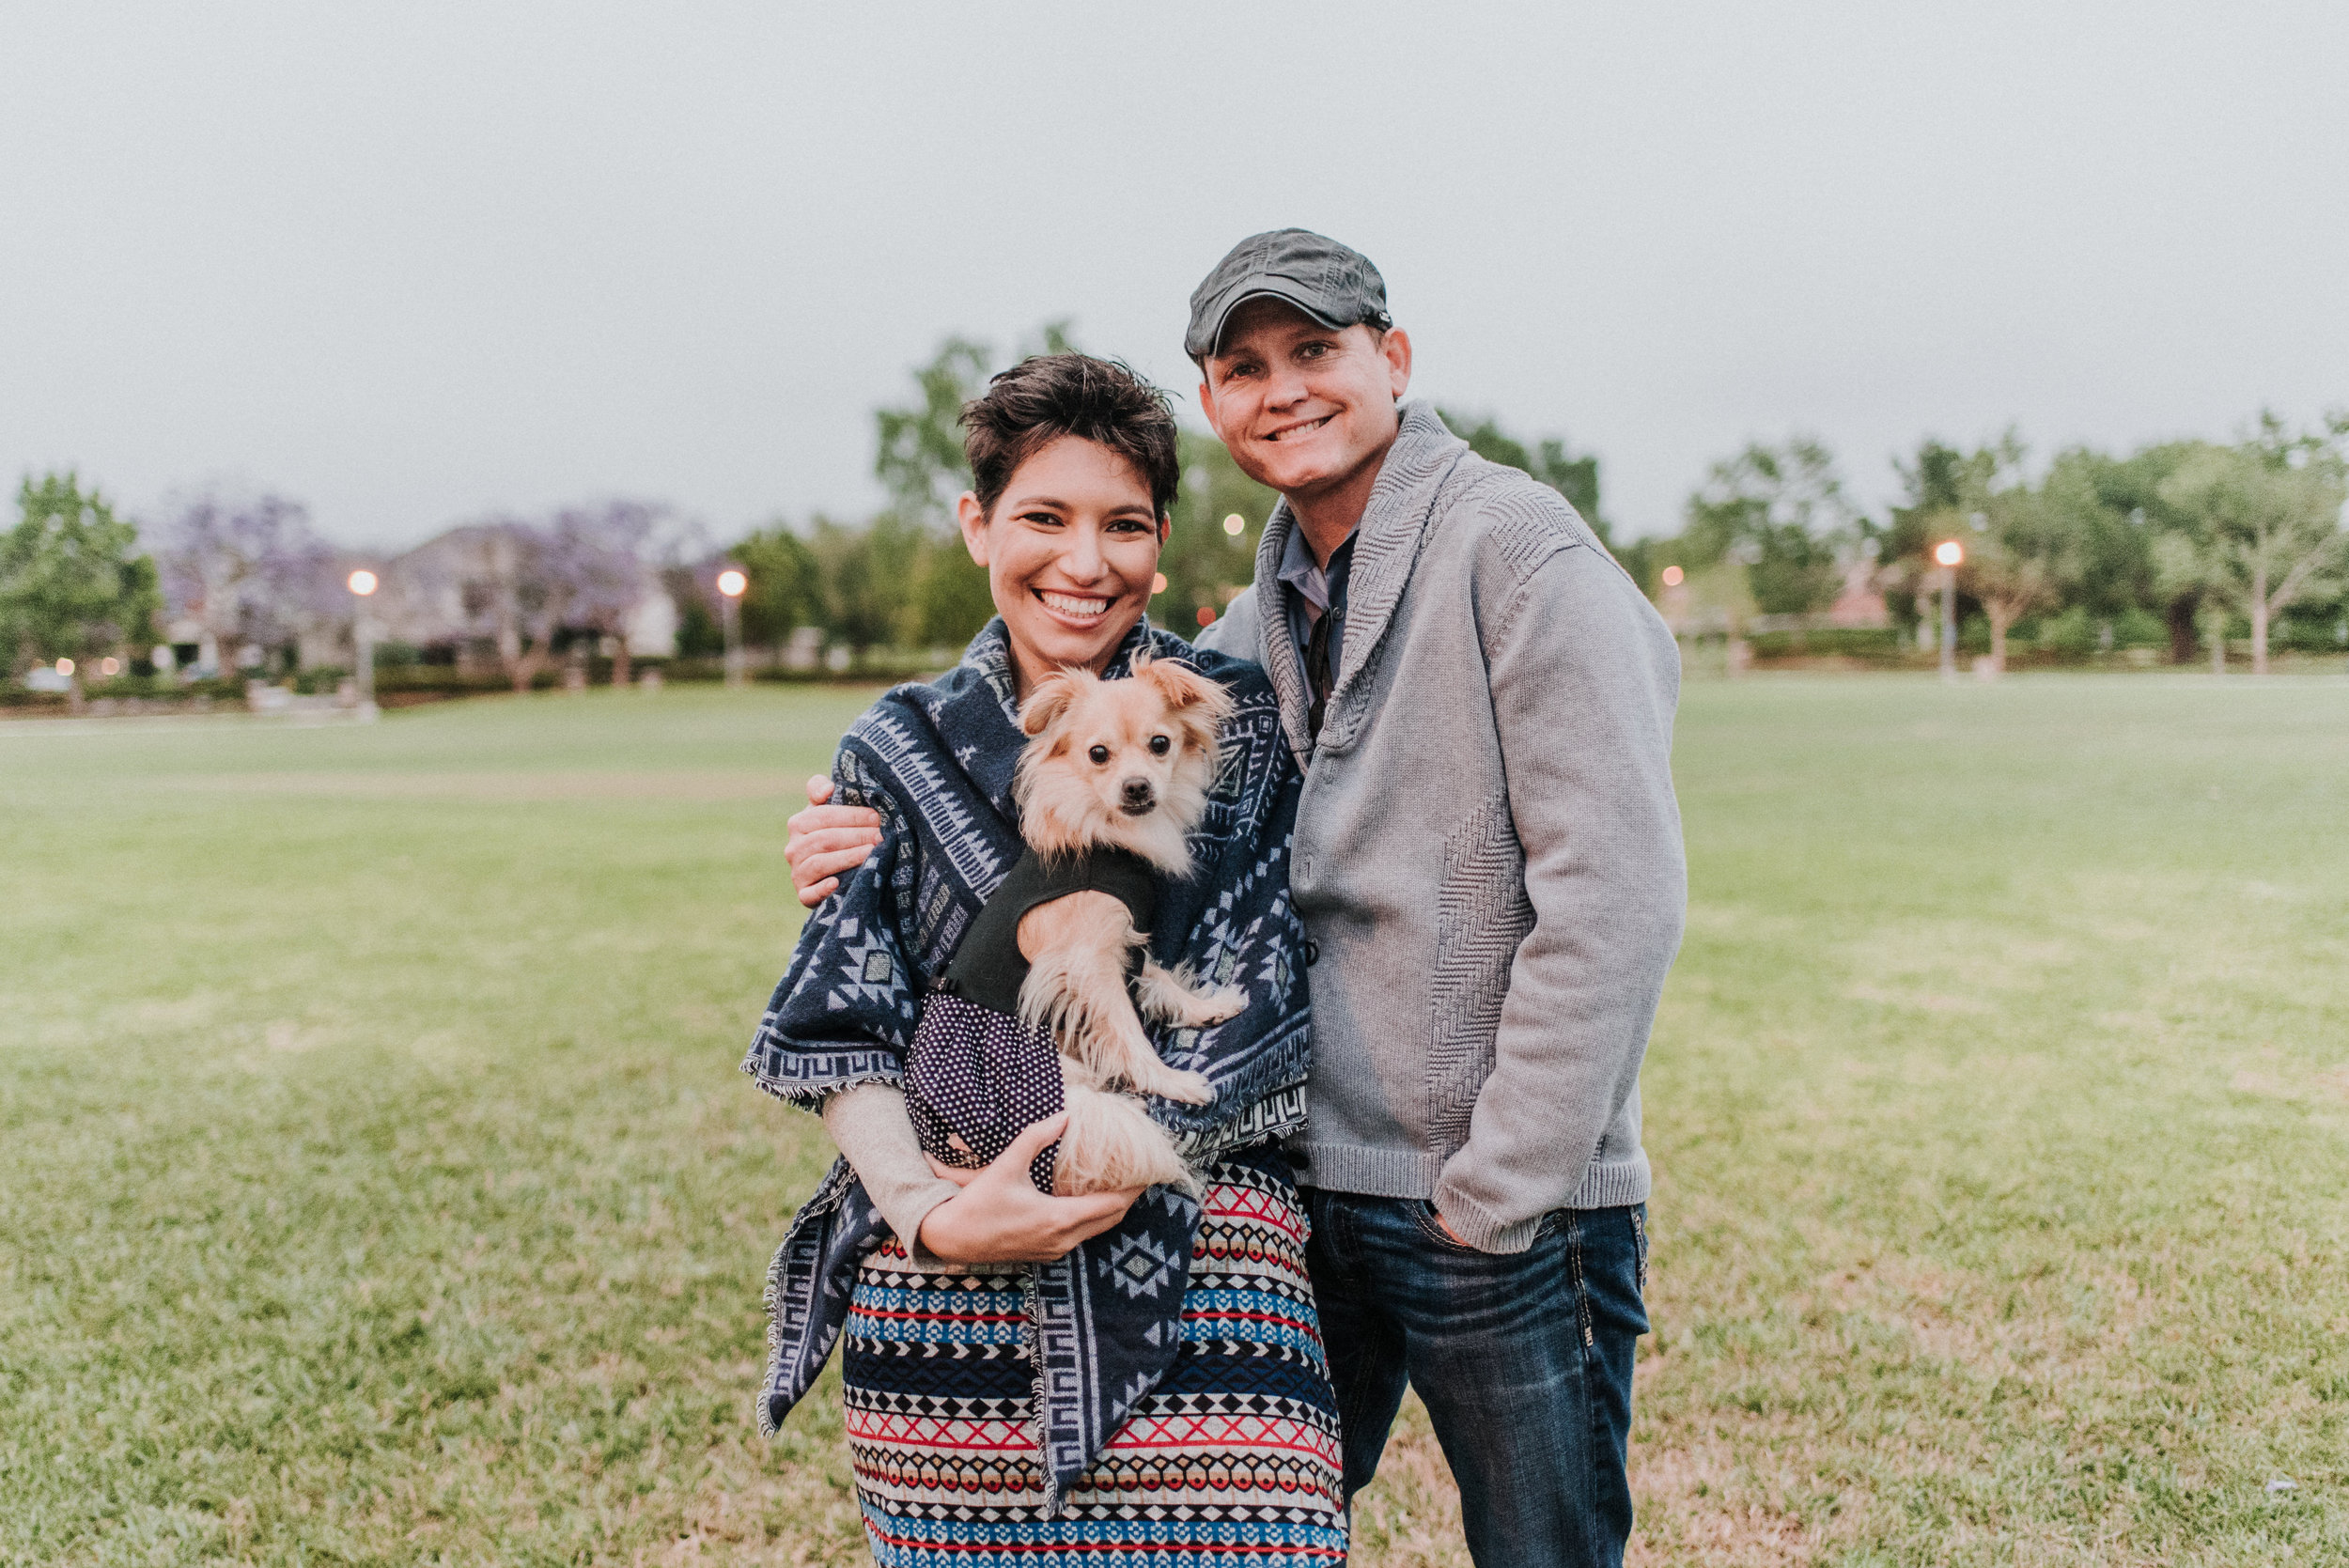 2019-06-17_Danielle_and_Brandon_-_Engaged_-_Silverado-206.jpg